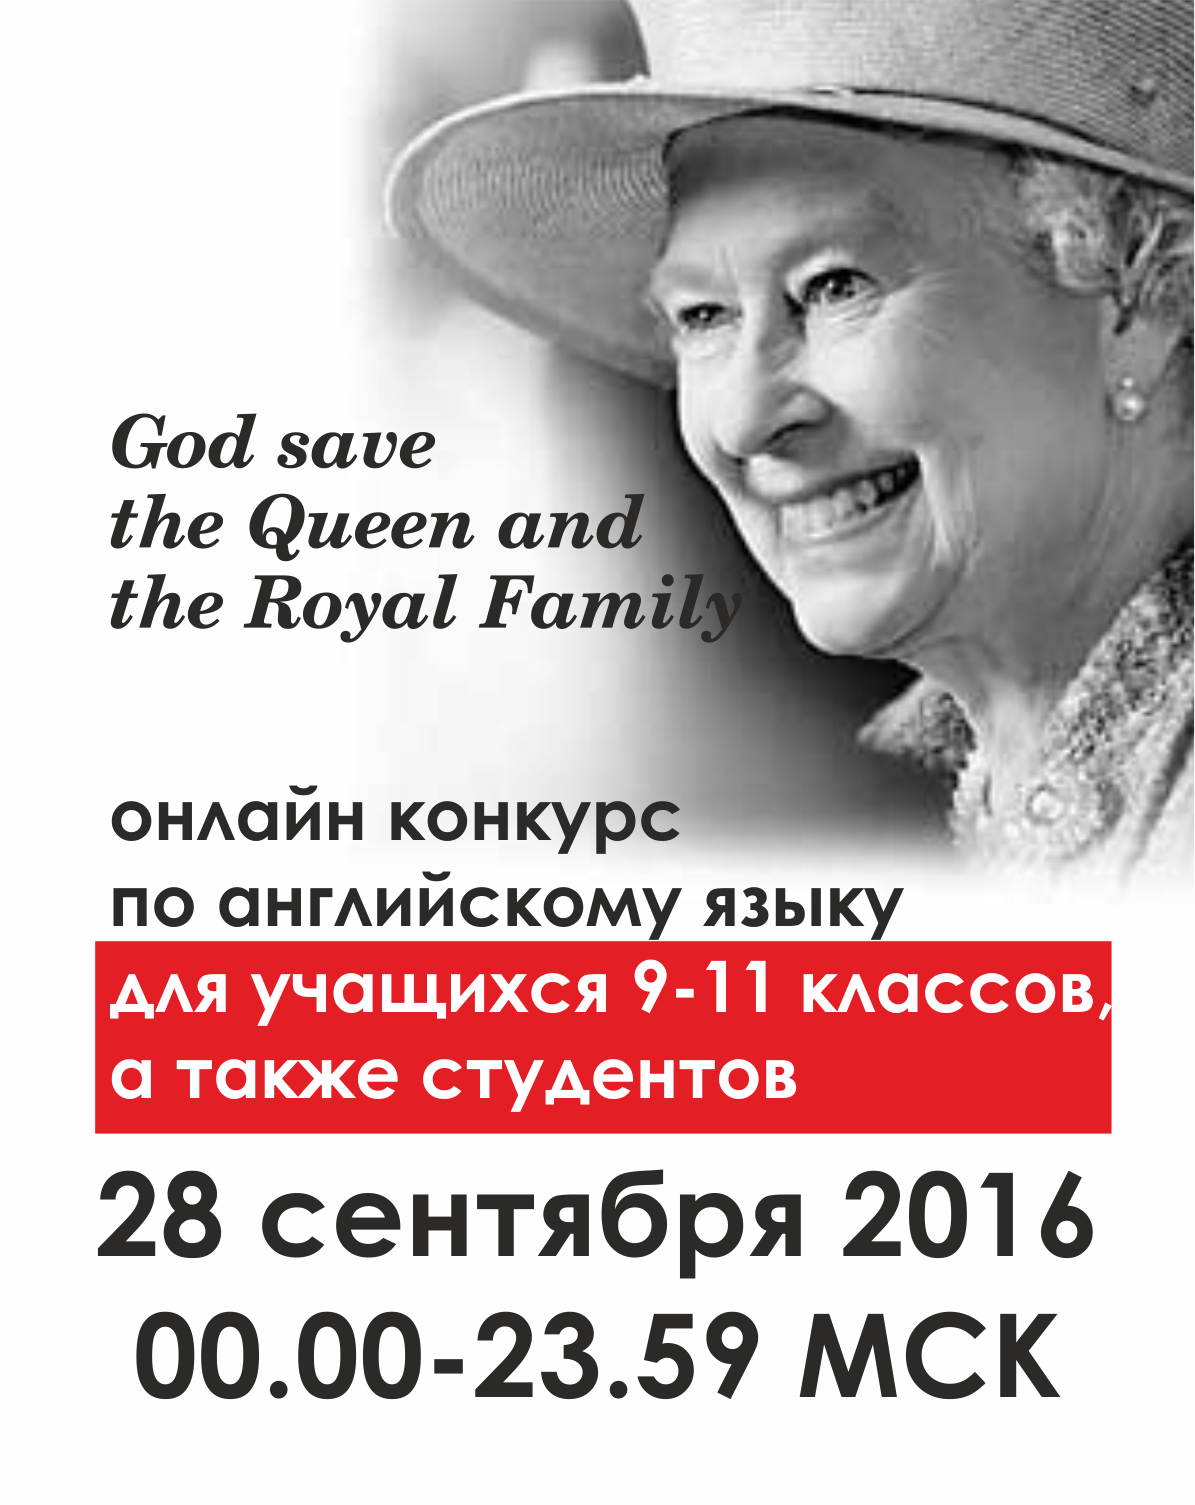 God Save the Queen and the Royal Family (9-11 классы, студенты)